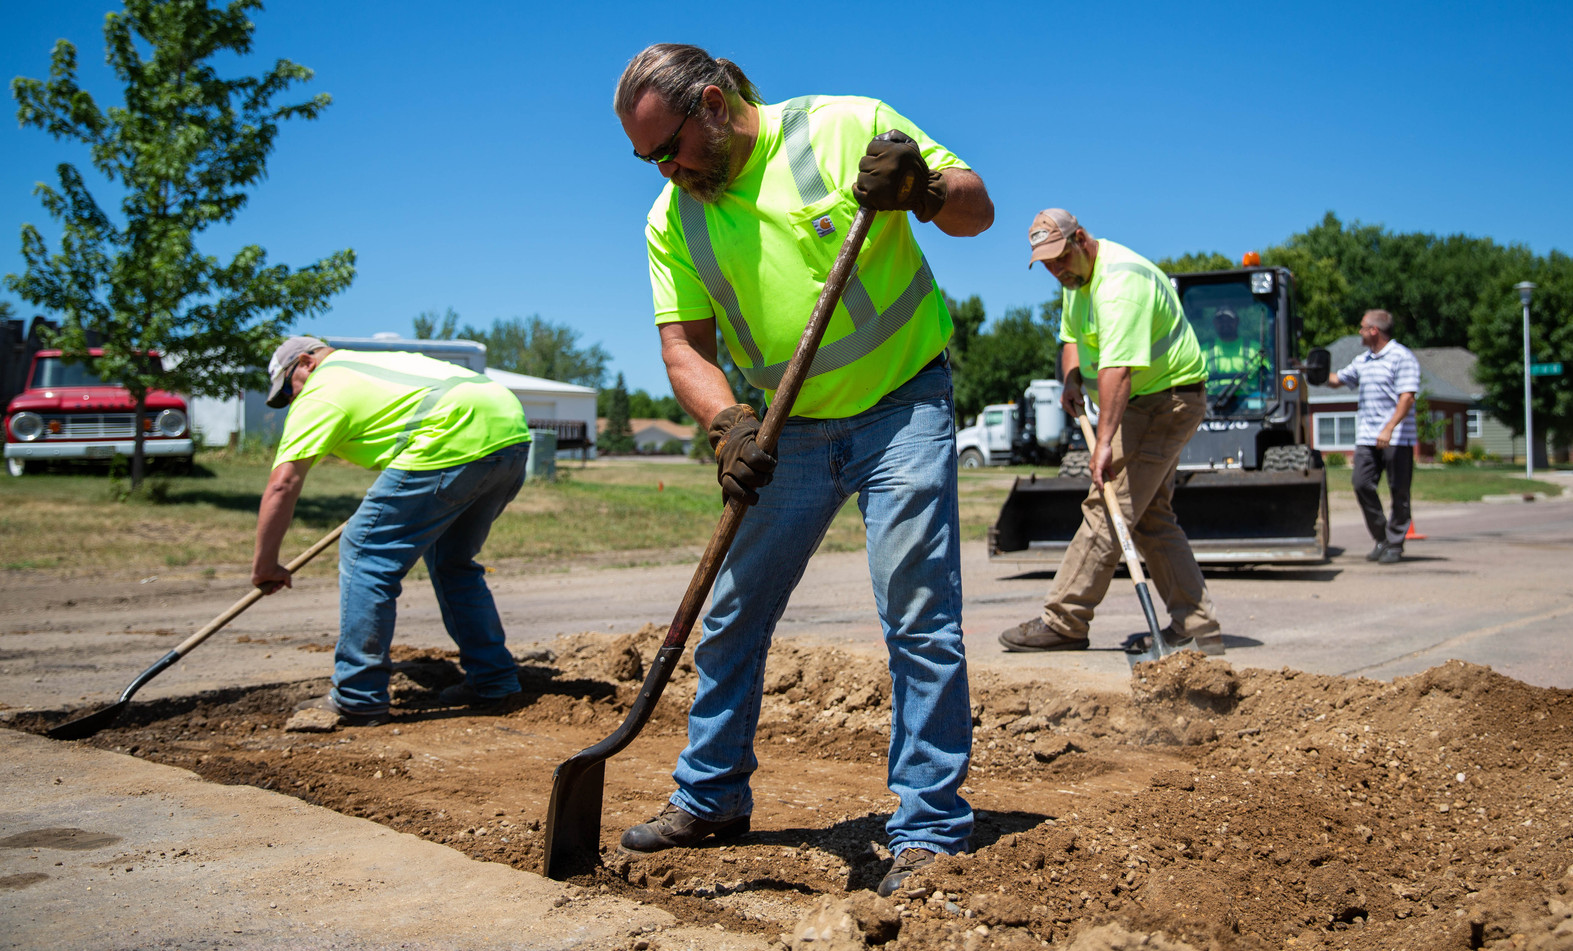 From left, Watertown Street Department employees Scott Brinkman, Keith Johnson and Jan Dailey help dig out old gravel from a trench they patched July 16, 2018, on 4th St. SW and 4th Avenue SW. When doing patchwork, the road crew starts by cutting and digging out the old asphalt, gravel and dirt, then put in two lifts of 1 1/2 to 2 inches of hot asphalt heated at approximately 280 degrees, lute and roll the new asphalt smooth and finish by letting it sit to cool for several hours. ©2018 Grace Ramey